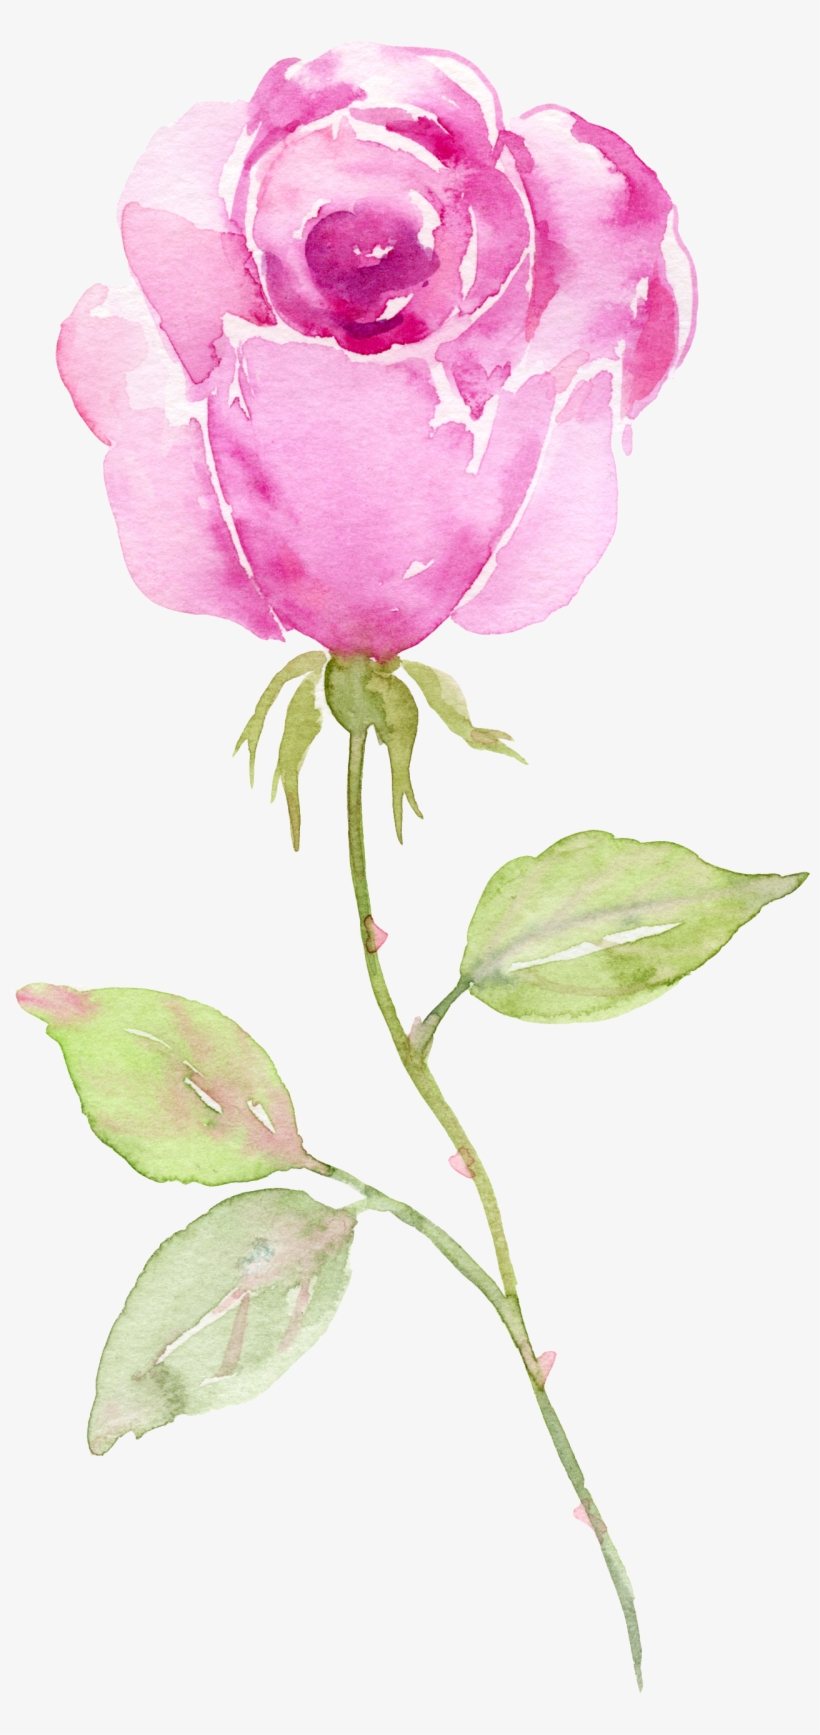 Watercolors - Foral Business Thank You Card, transparent png #1178490